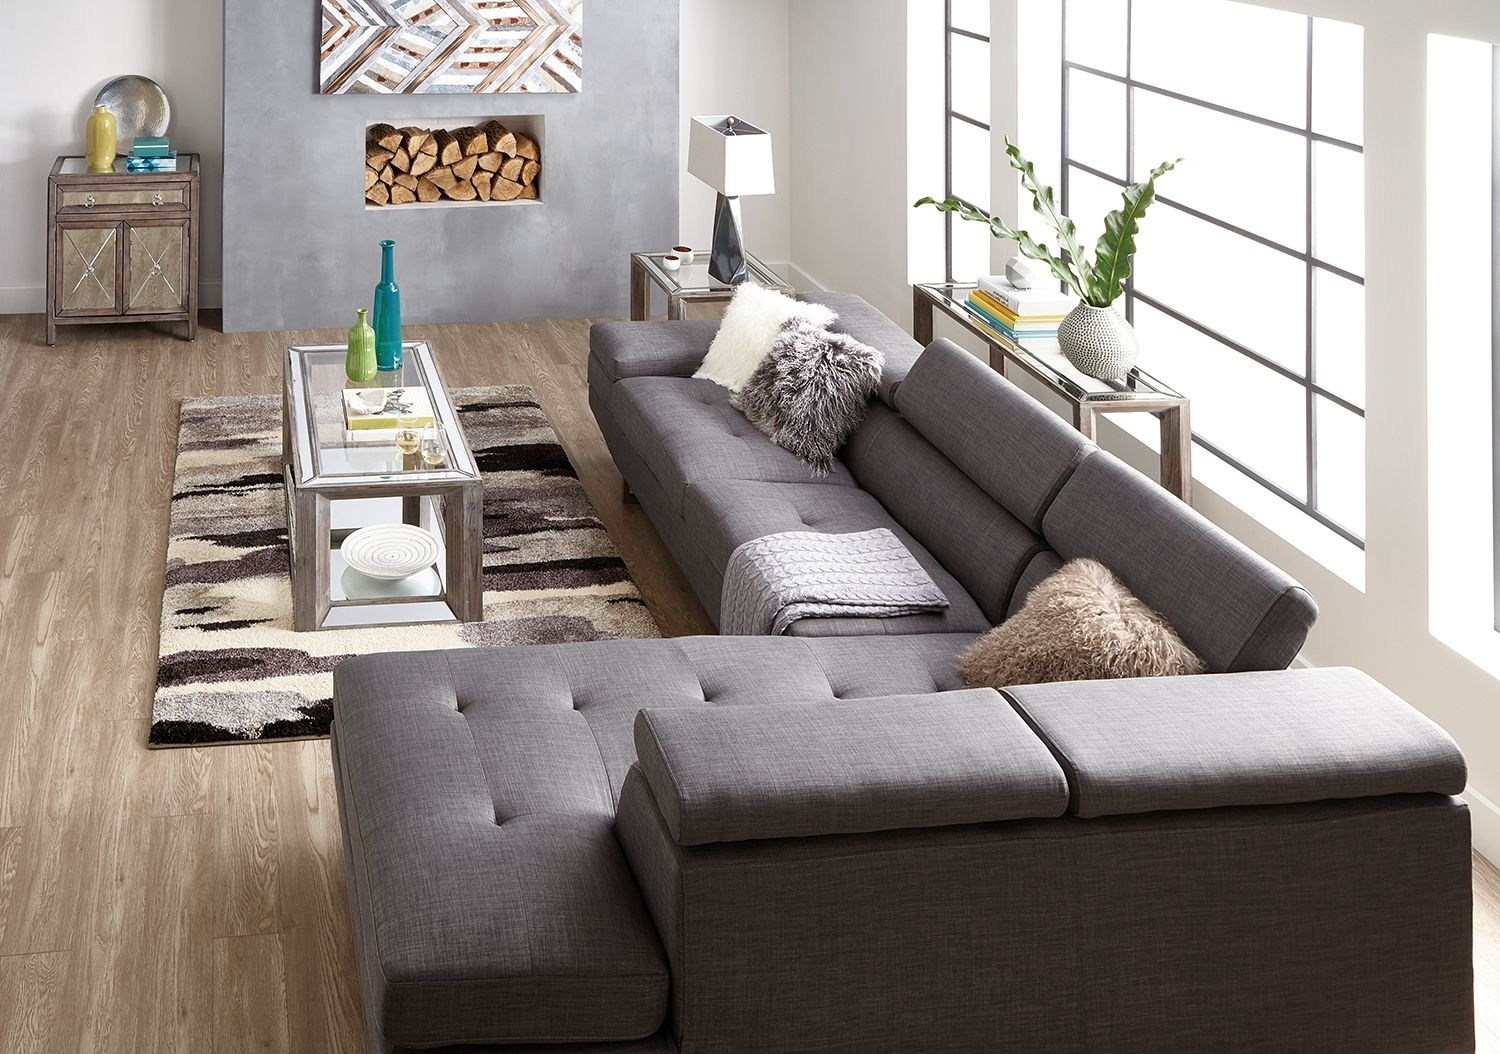 Zeke 2-Piece Linen-Look Fabric Right-Facing Sectional - Steel regarding Nico Grey Sectionals With Left Facing Storage Chaise